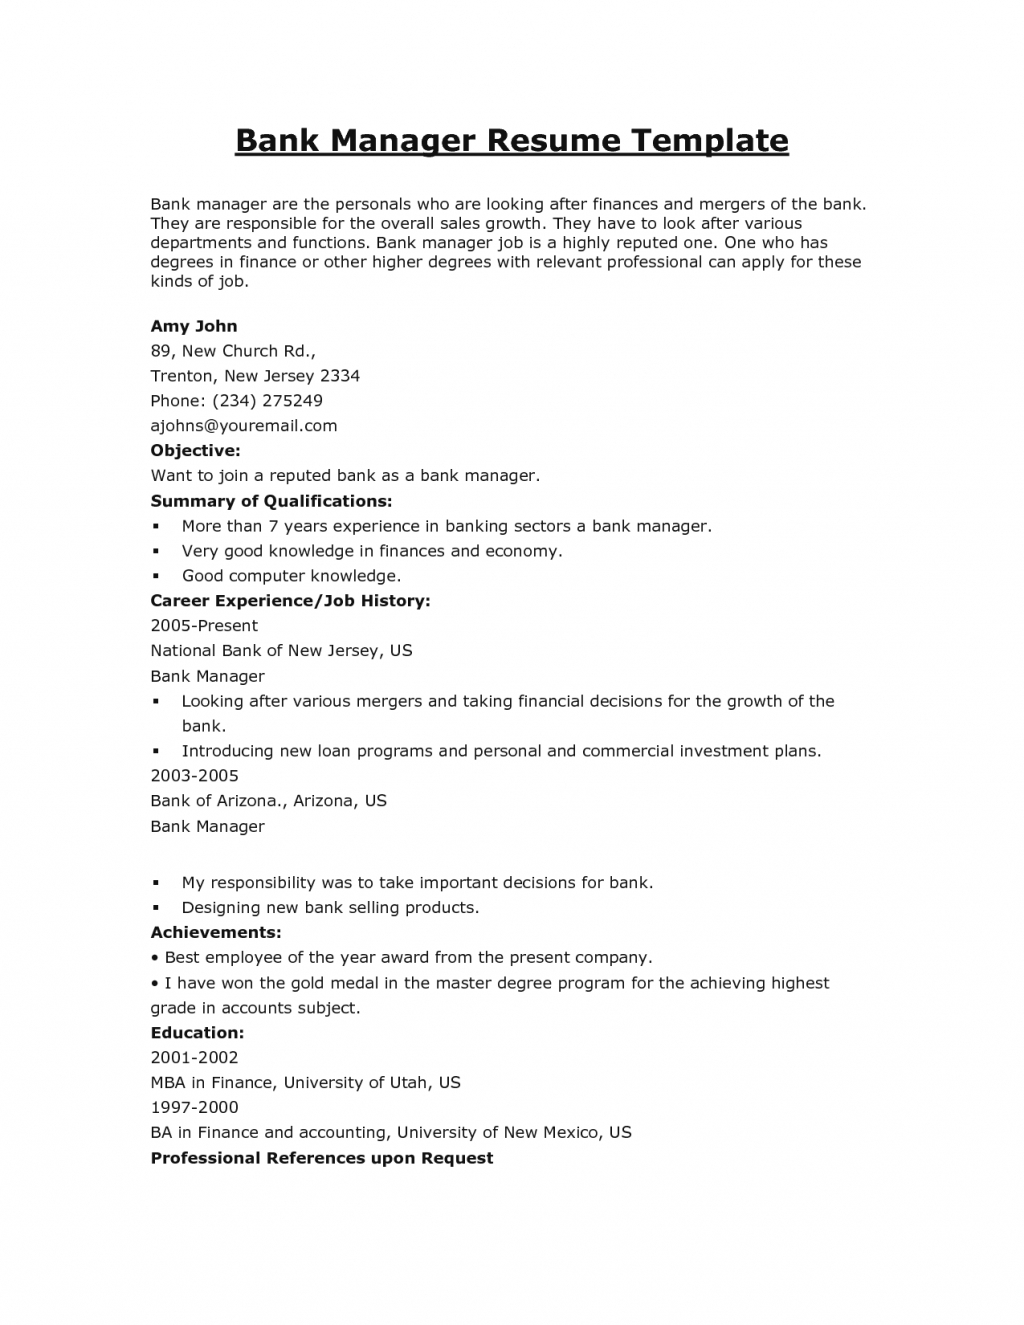 wso resume template example-wso cover letter april onthemarch co 15-c